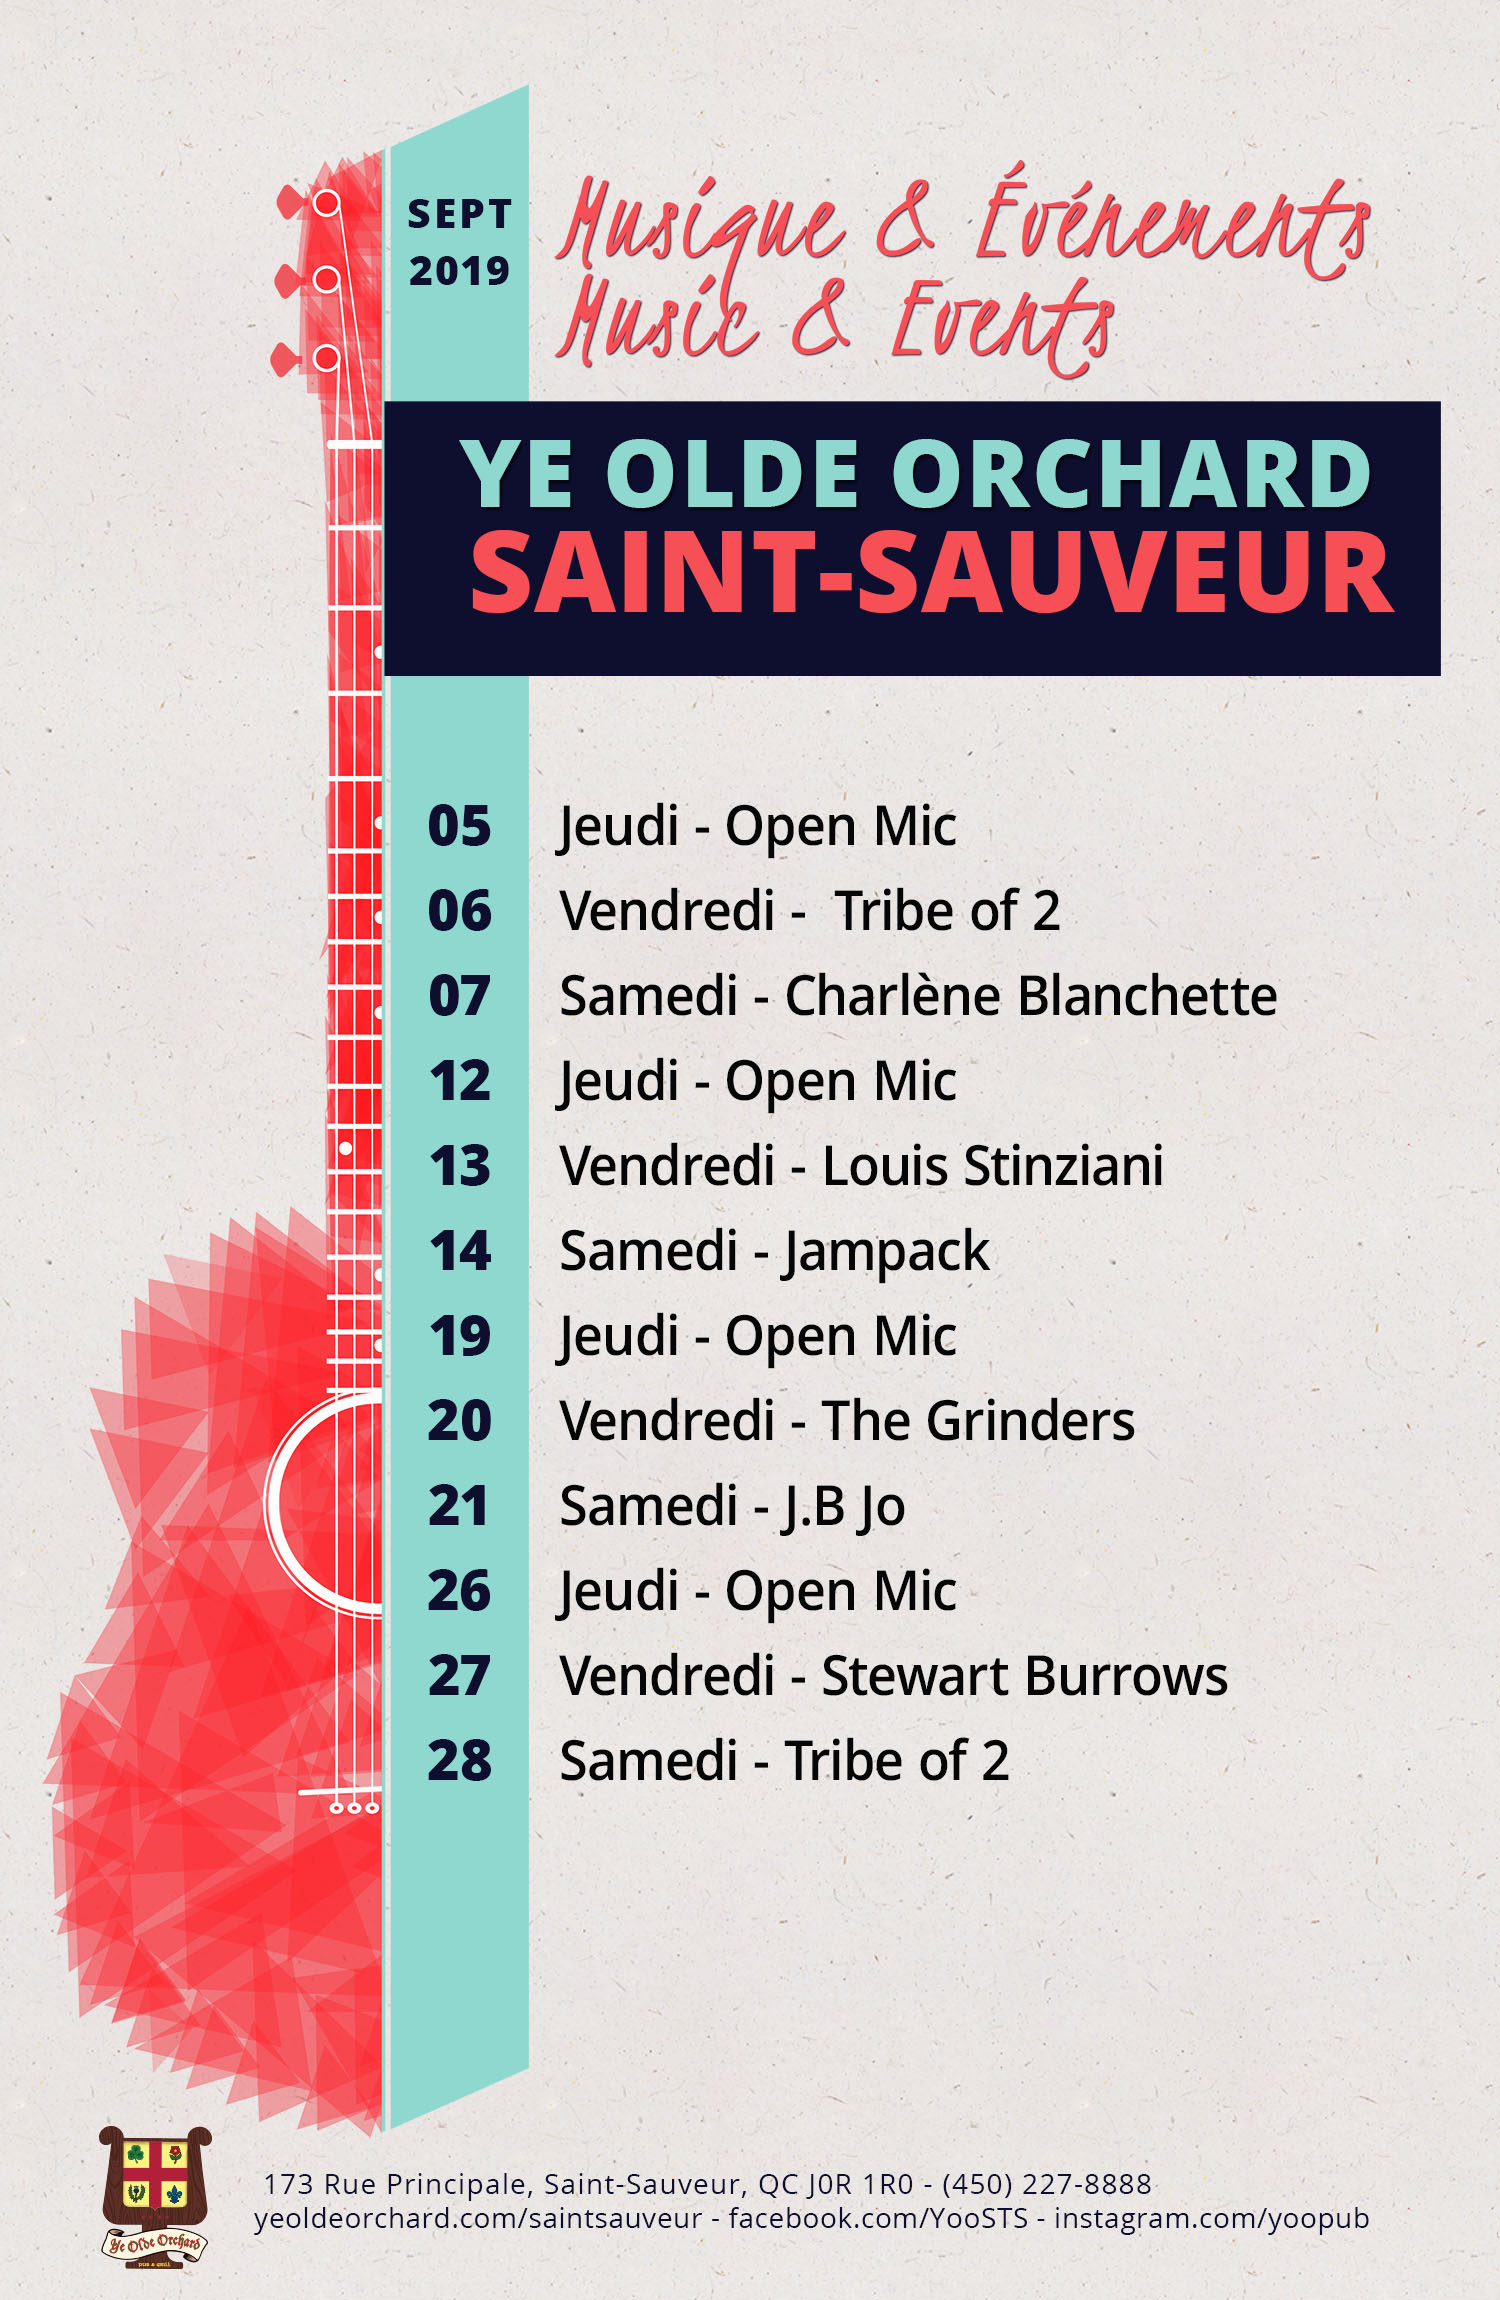 ye-olde-orchard-pub-music-and-events-calendar-SaintSauveur-WEB